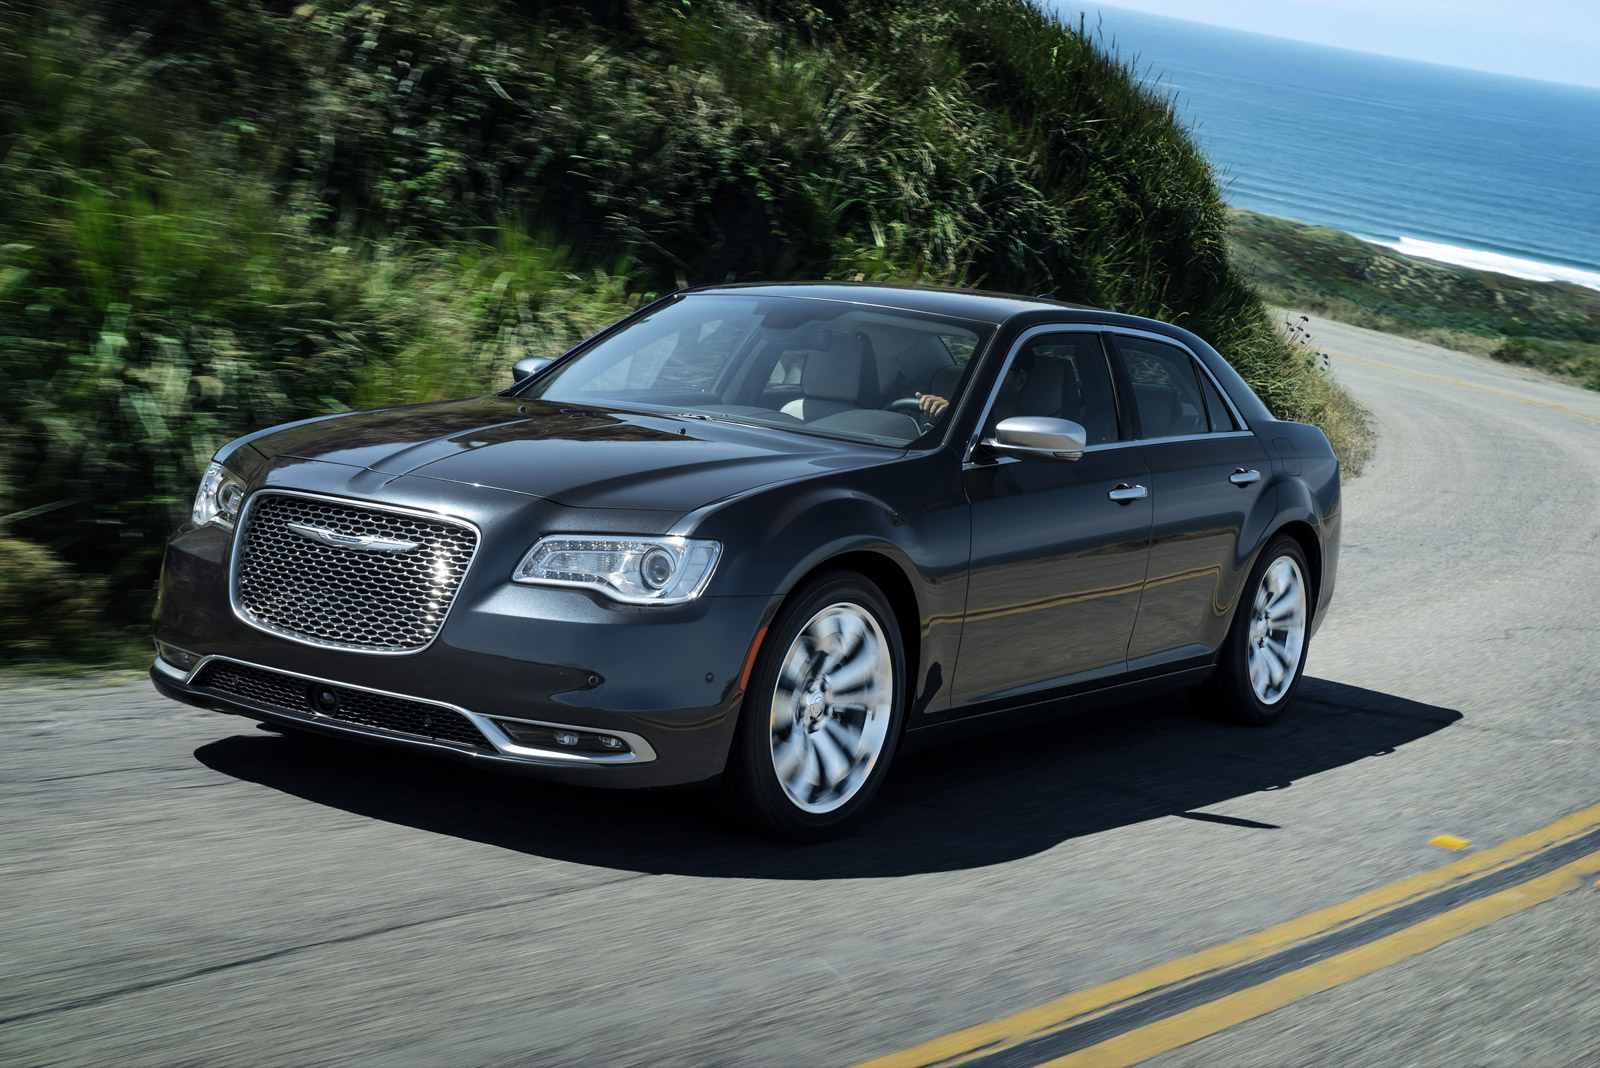 New and Used Chrysler 300: Prices, Photos, Reviews, Specs - The Car Connection